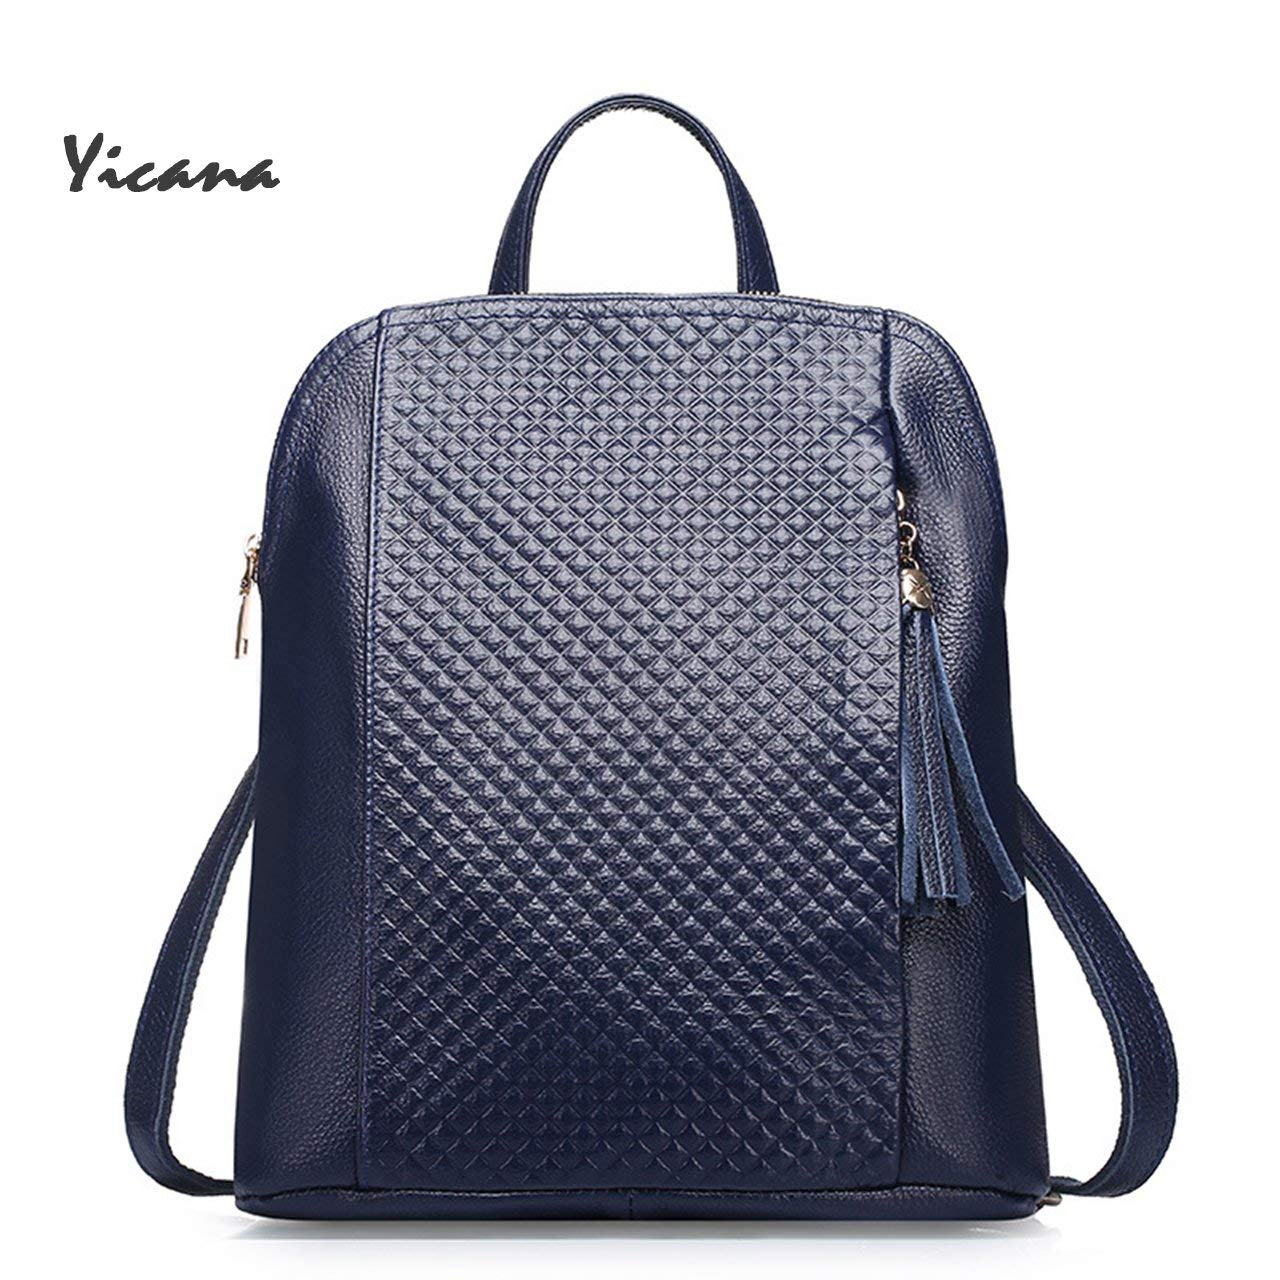 Yicana 2018 Spring/Summer New Style Genuine Leather Women Capacity Backpack Travelling Bag (Blue)